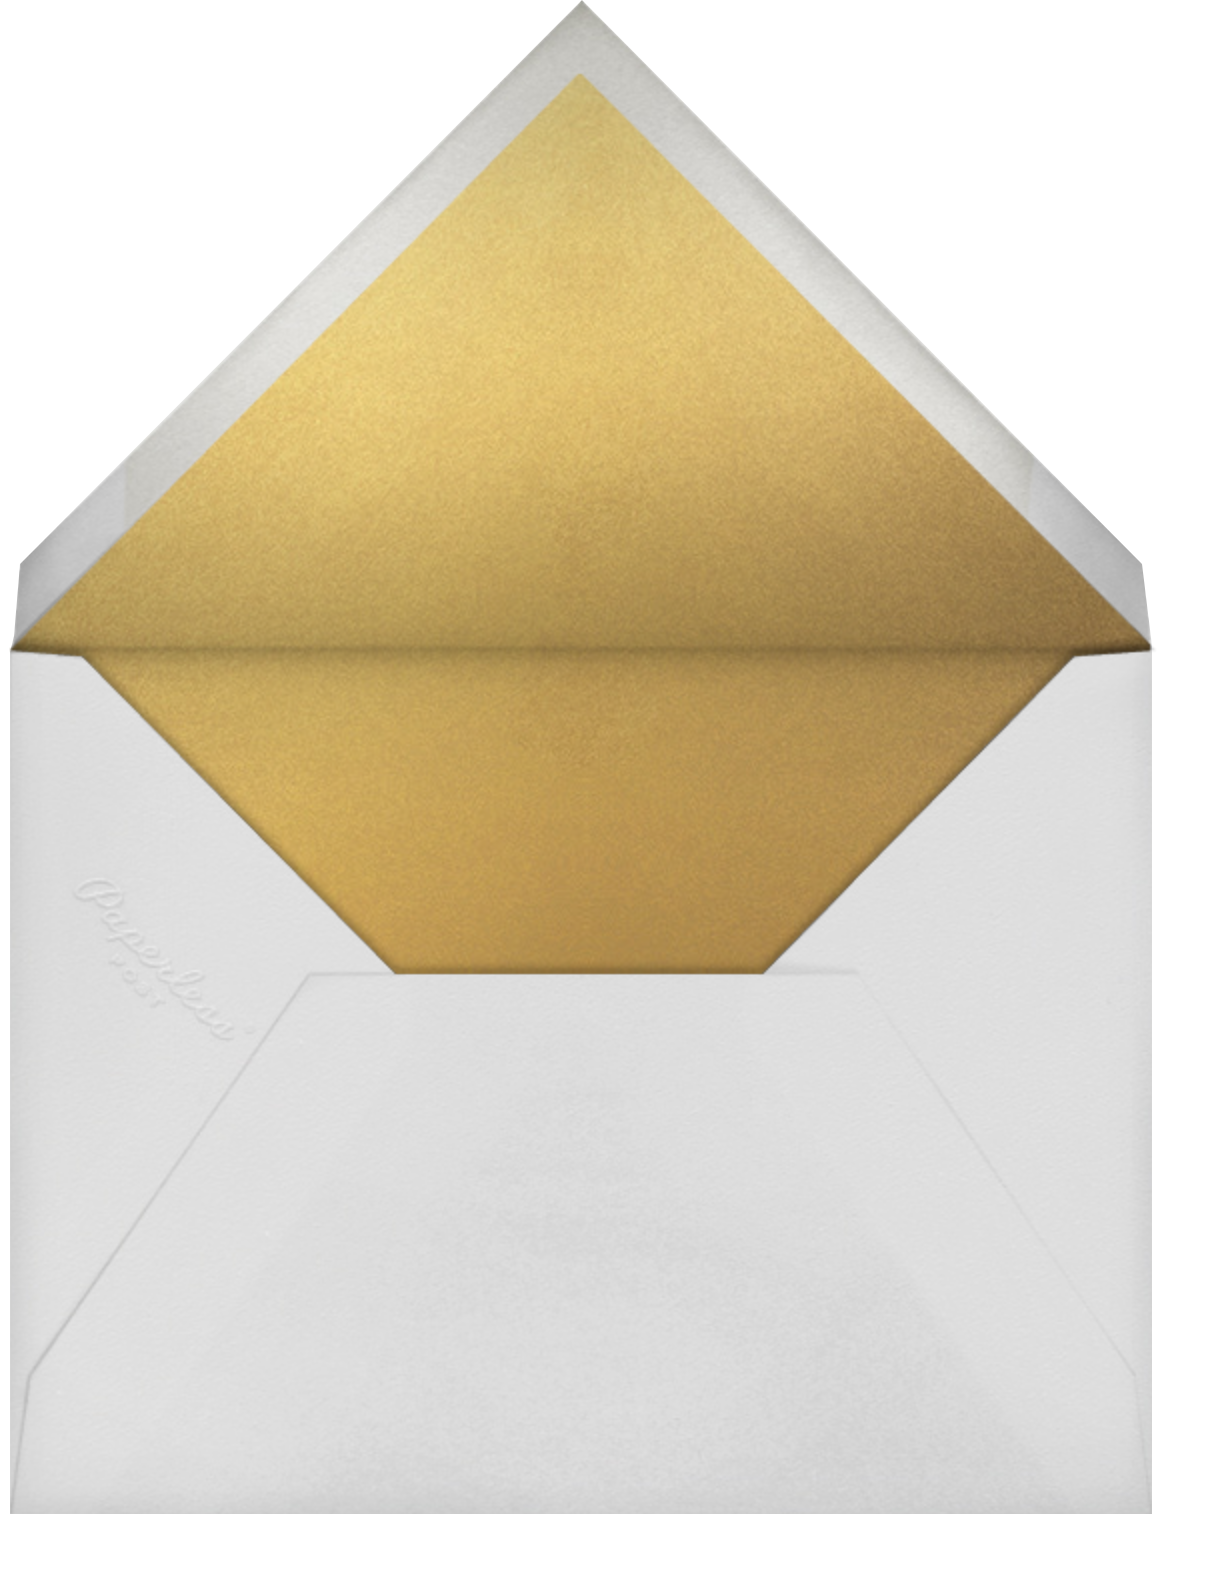 Contour Branch - White - Paperless Post - Holiday cards - envelope back